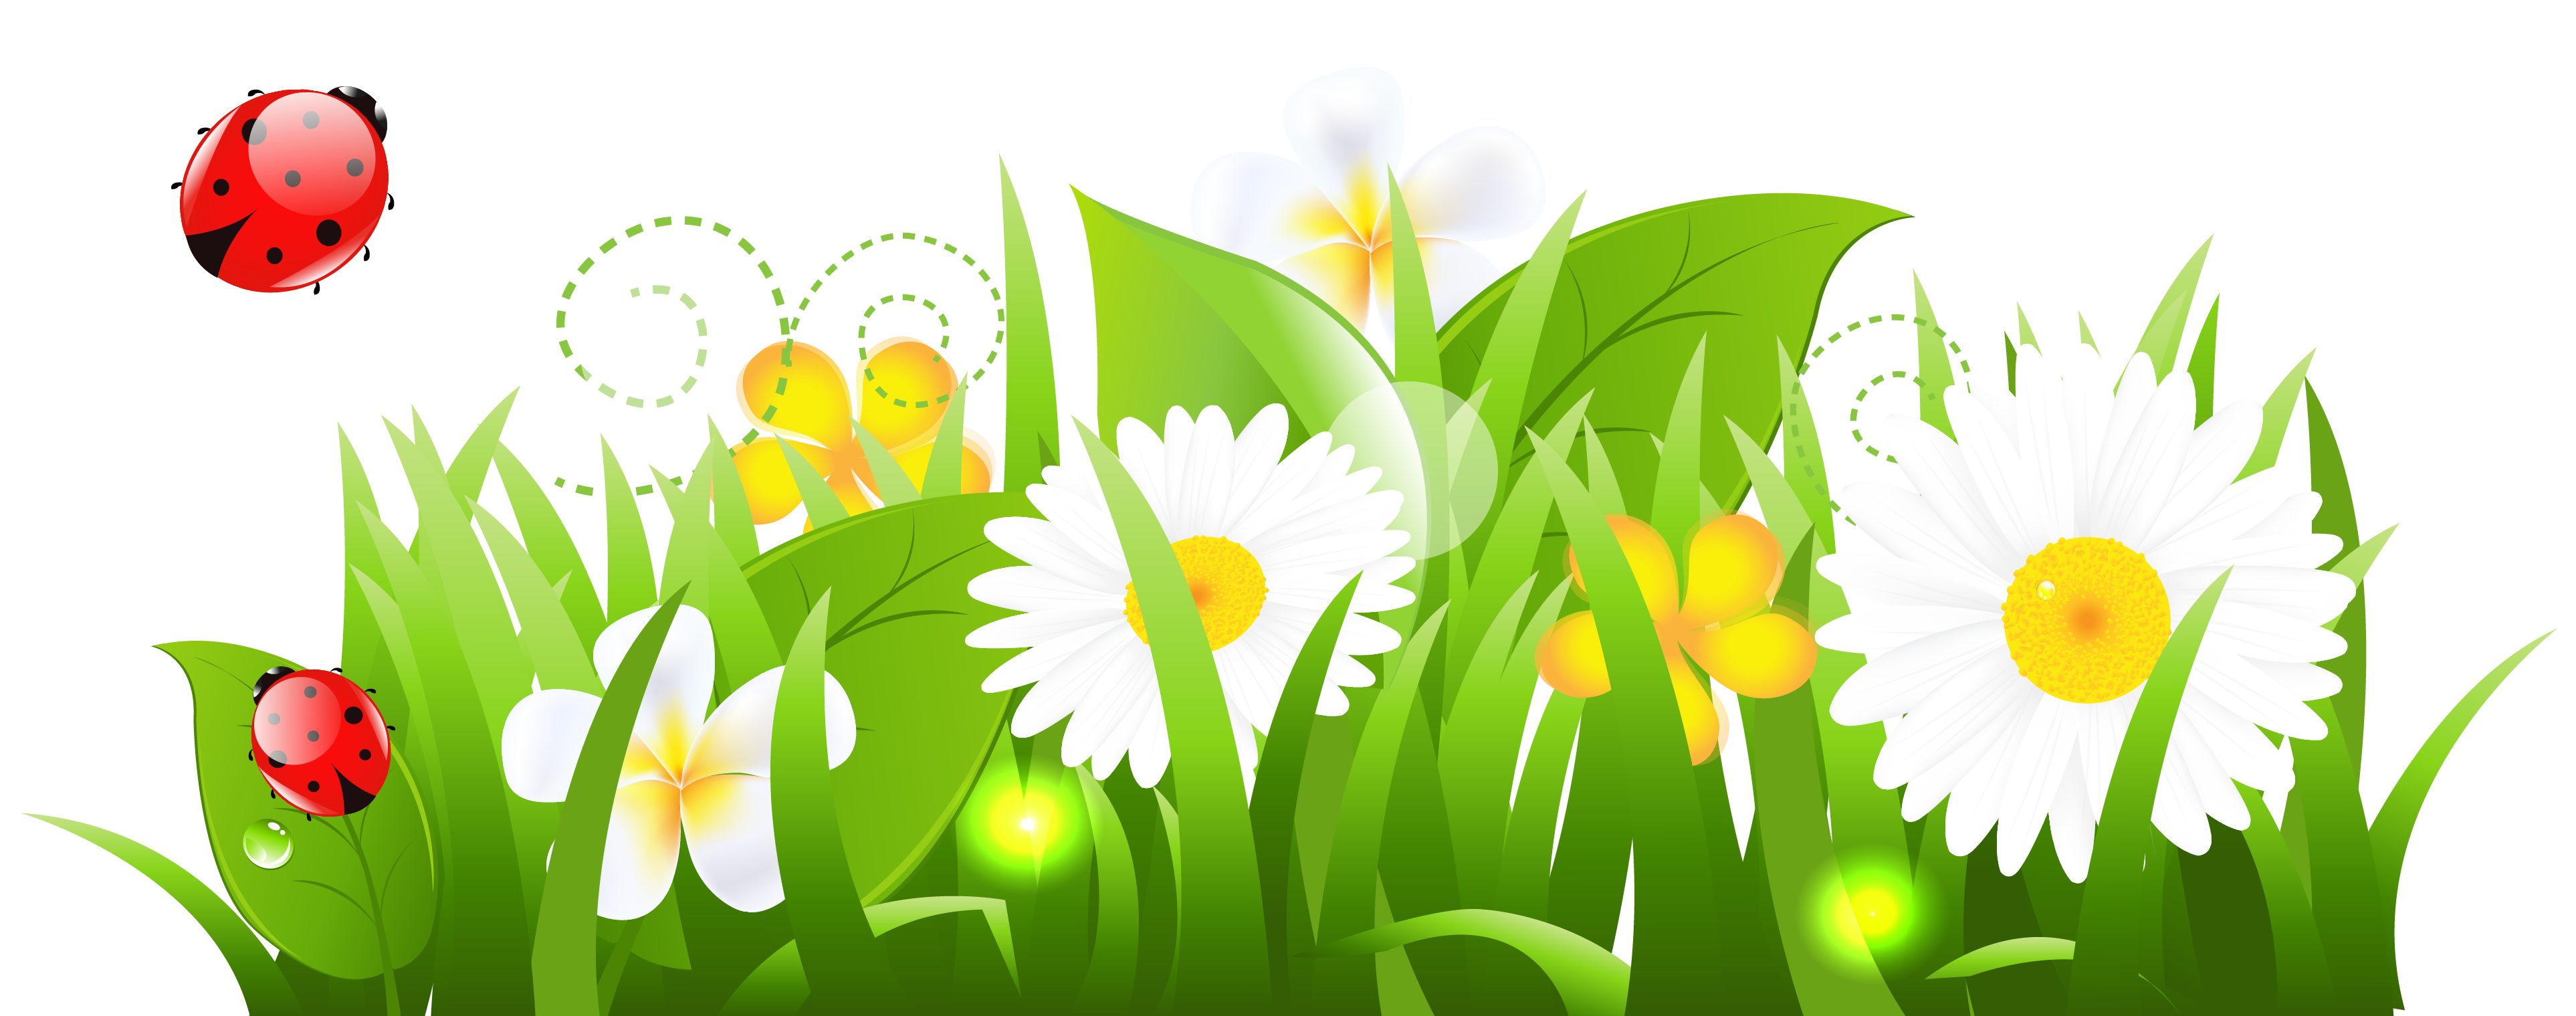 May clipart flowers clipart transparent library Grass and flowers clip art free clipart images clipartwiz - Clipartix clipart transparent library